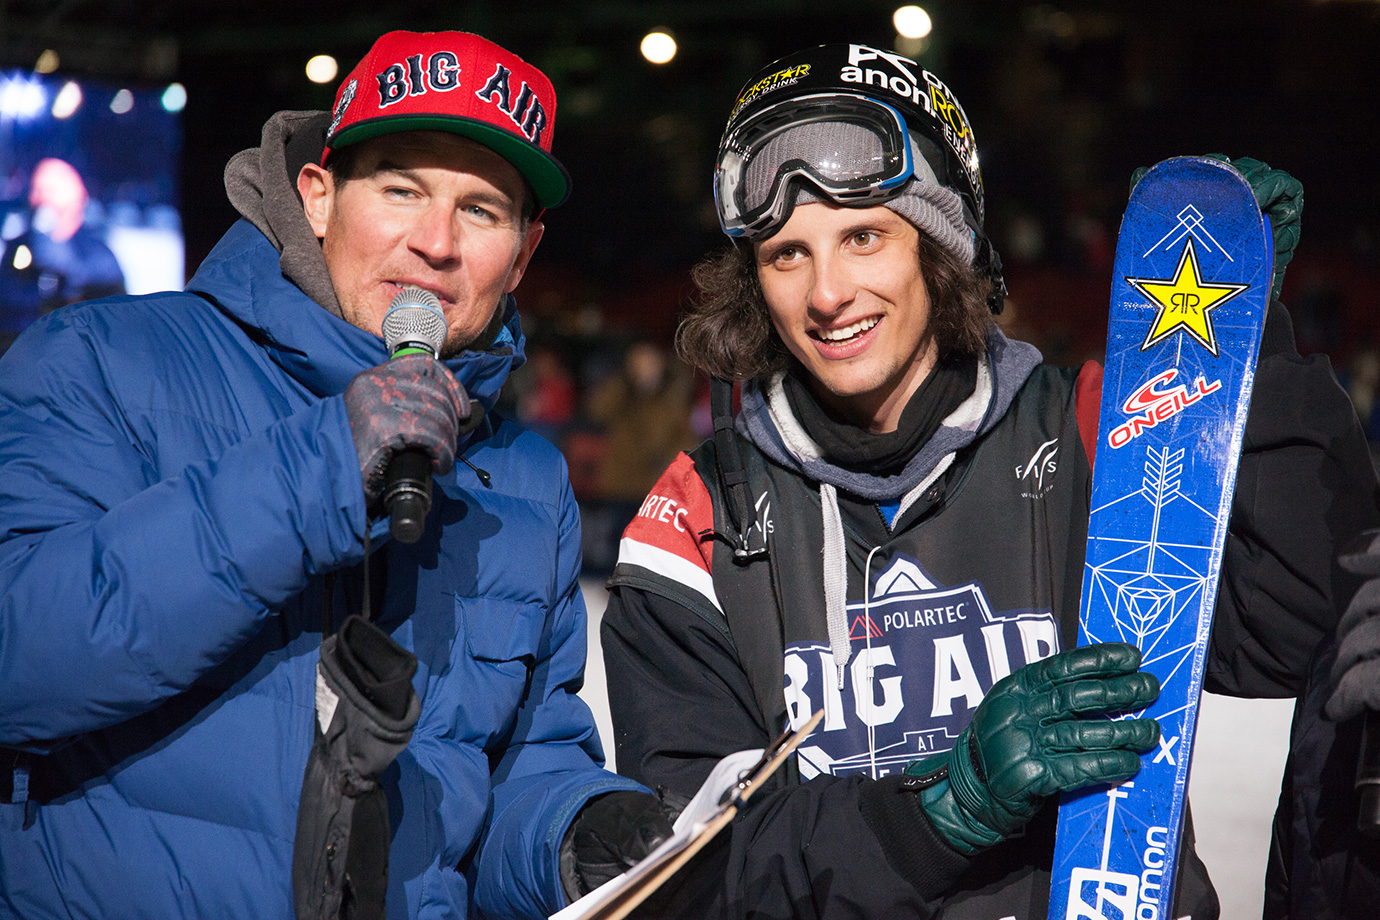 Men's ski Big Air winner Vincent Gagnier during his interview with Fenway Big Air and X Games field reporter DC.